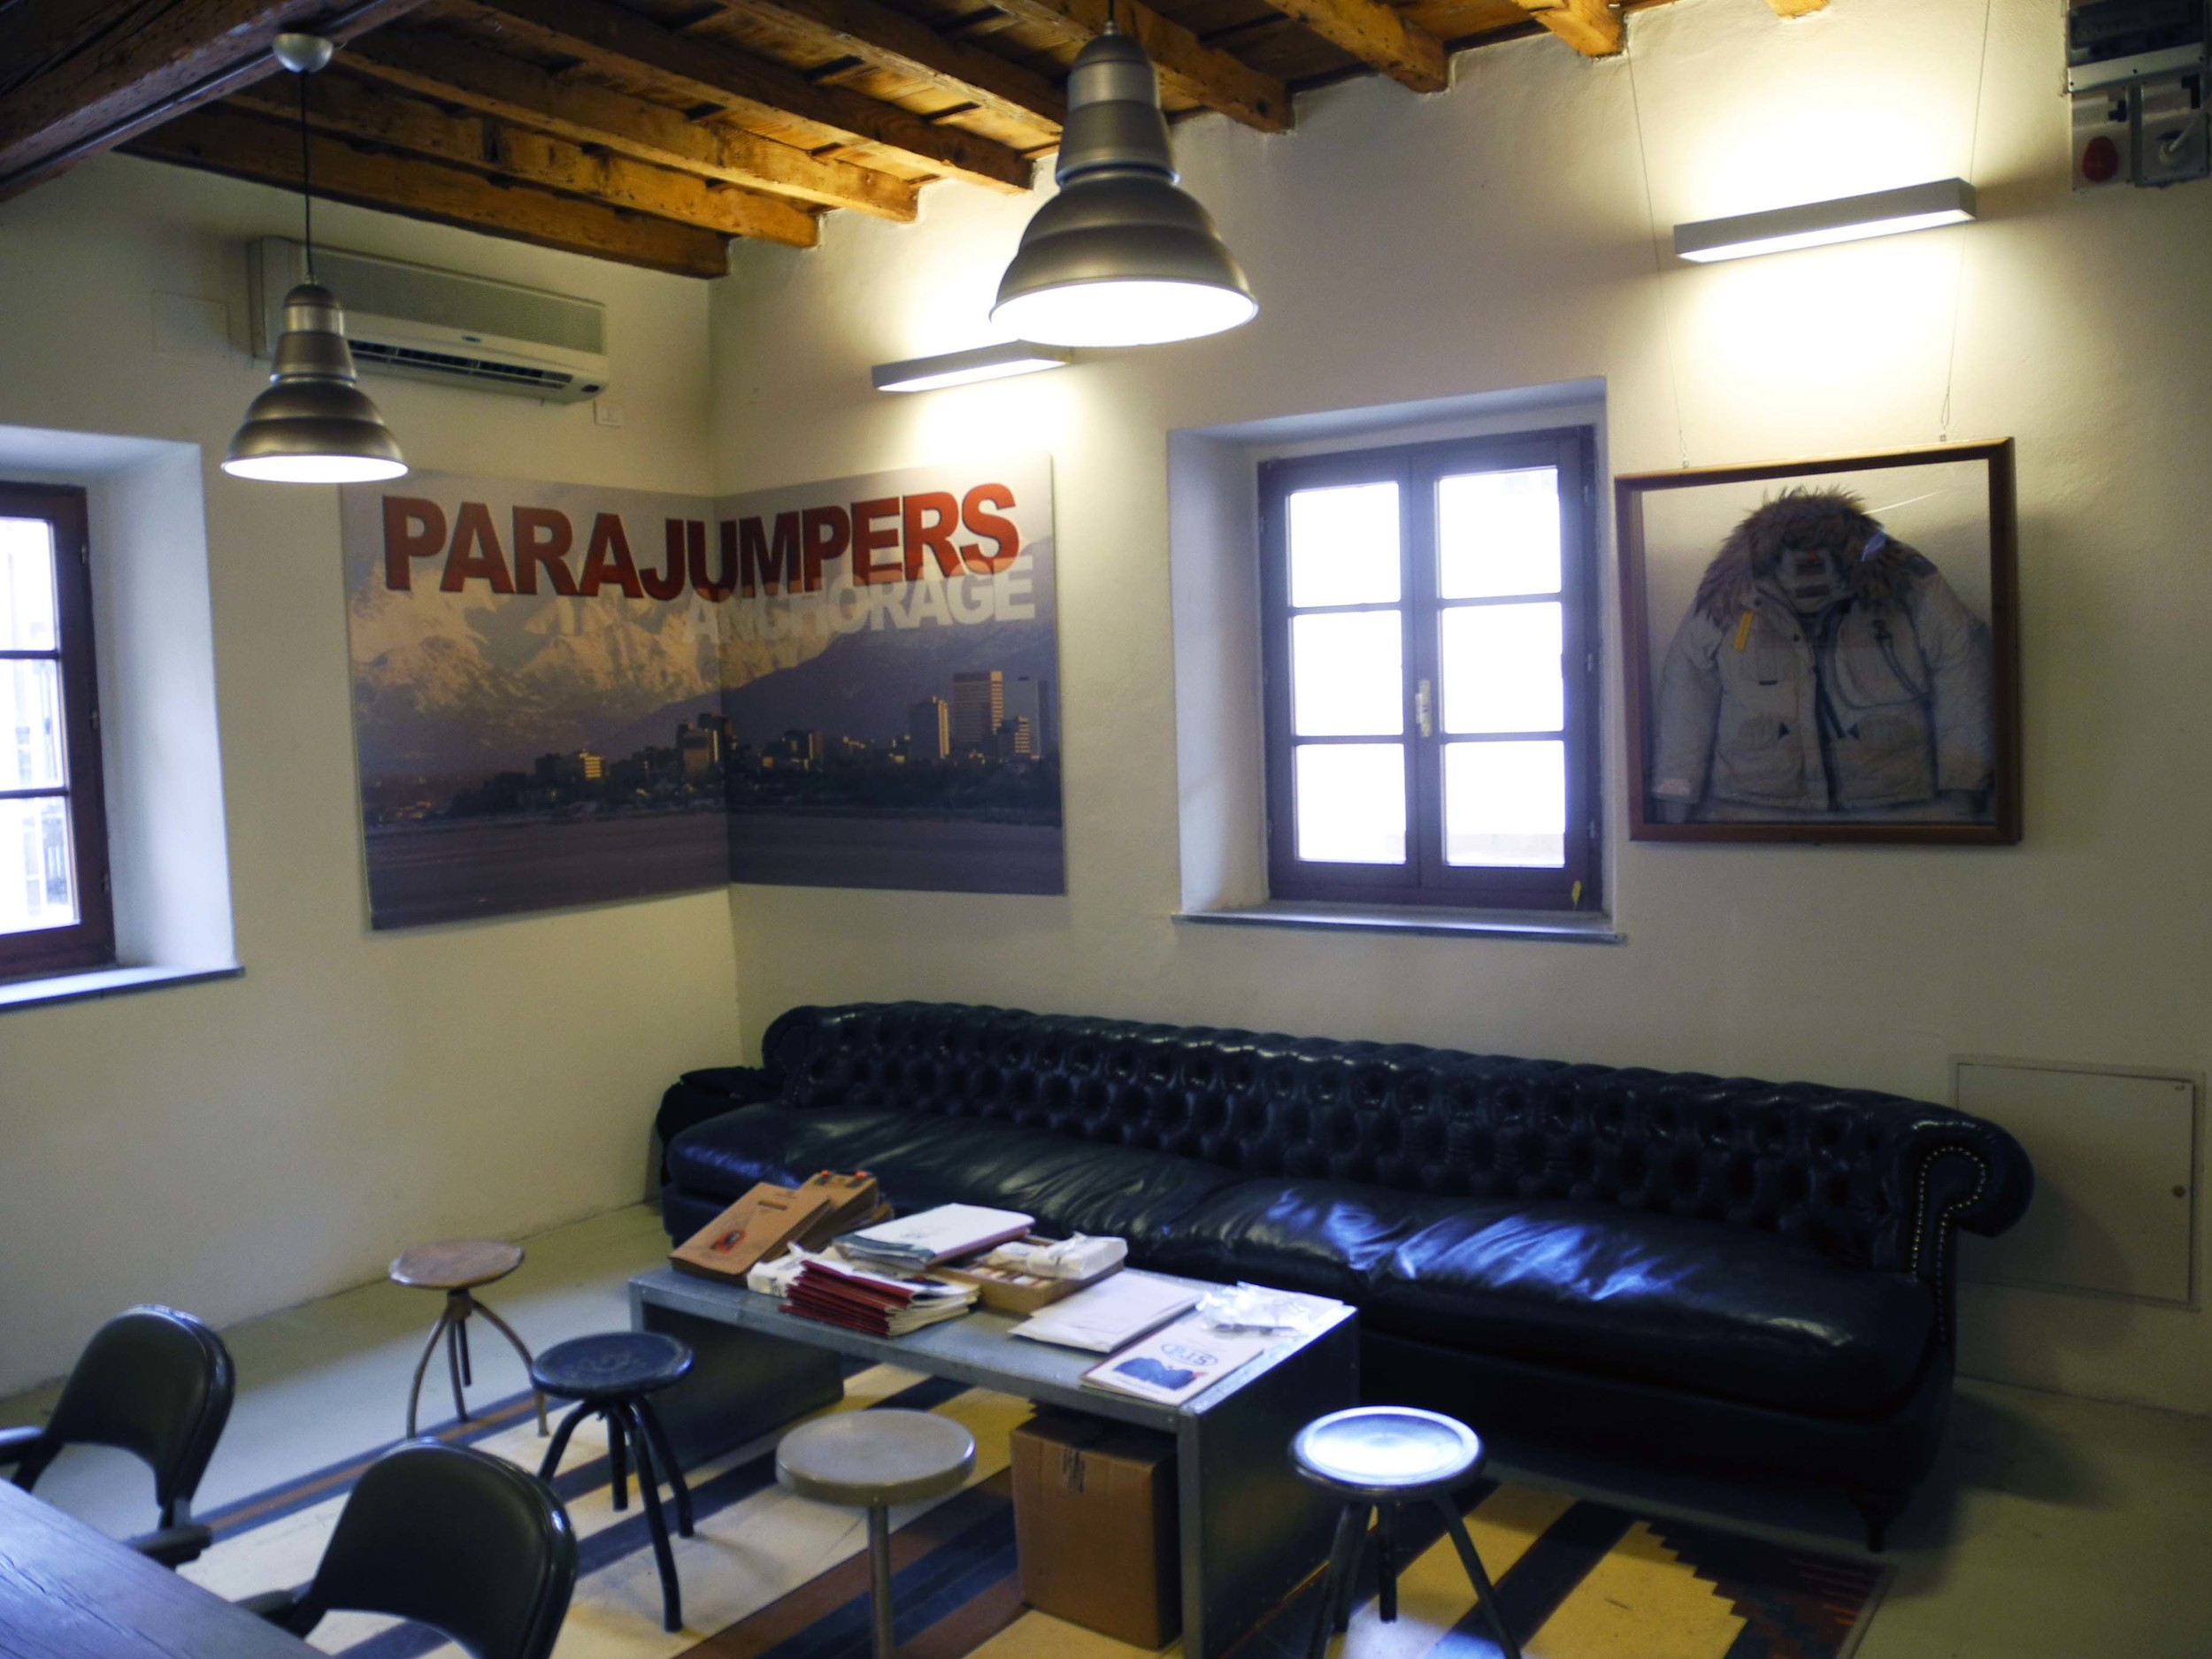 PARAJUMPERS -Pitti, Firenze (IT) - 2014